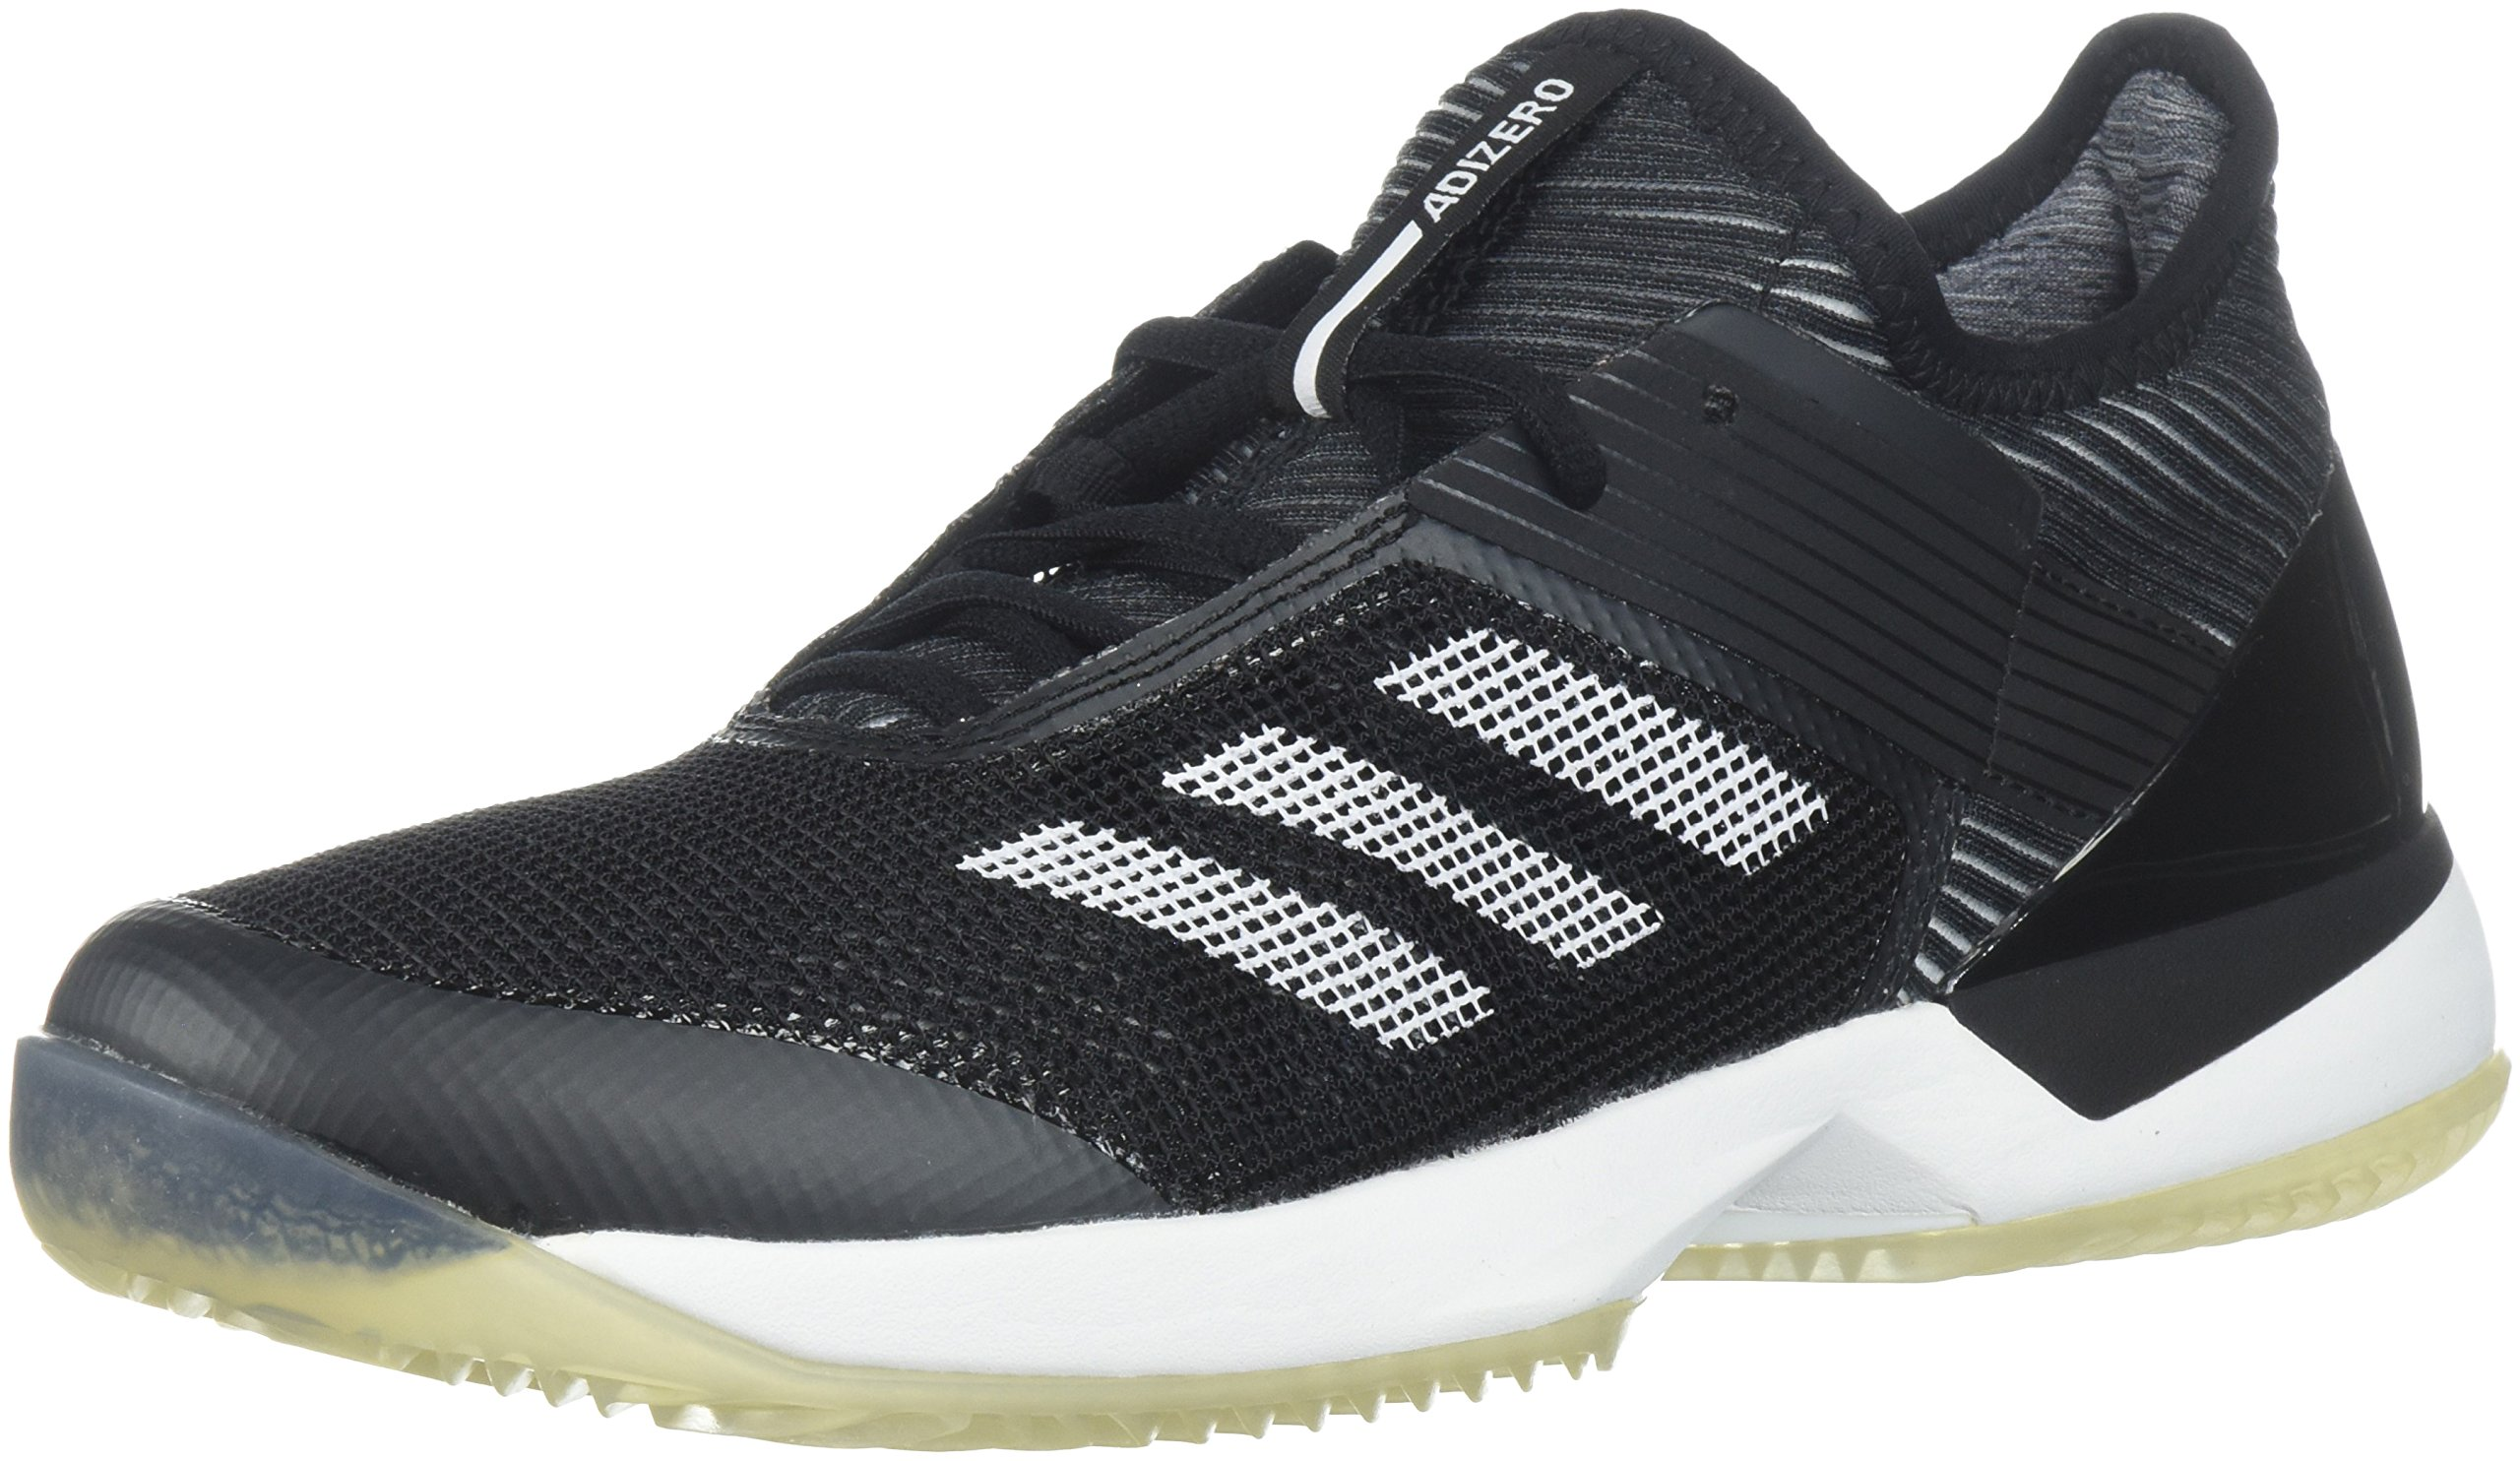 adidas Women's Adizero Ubersonic 3 w Clay Tennis Shoe, Core Black/White/Core Black, 8 M US